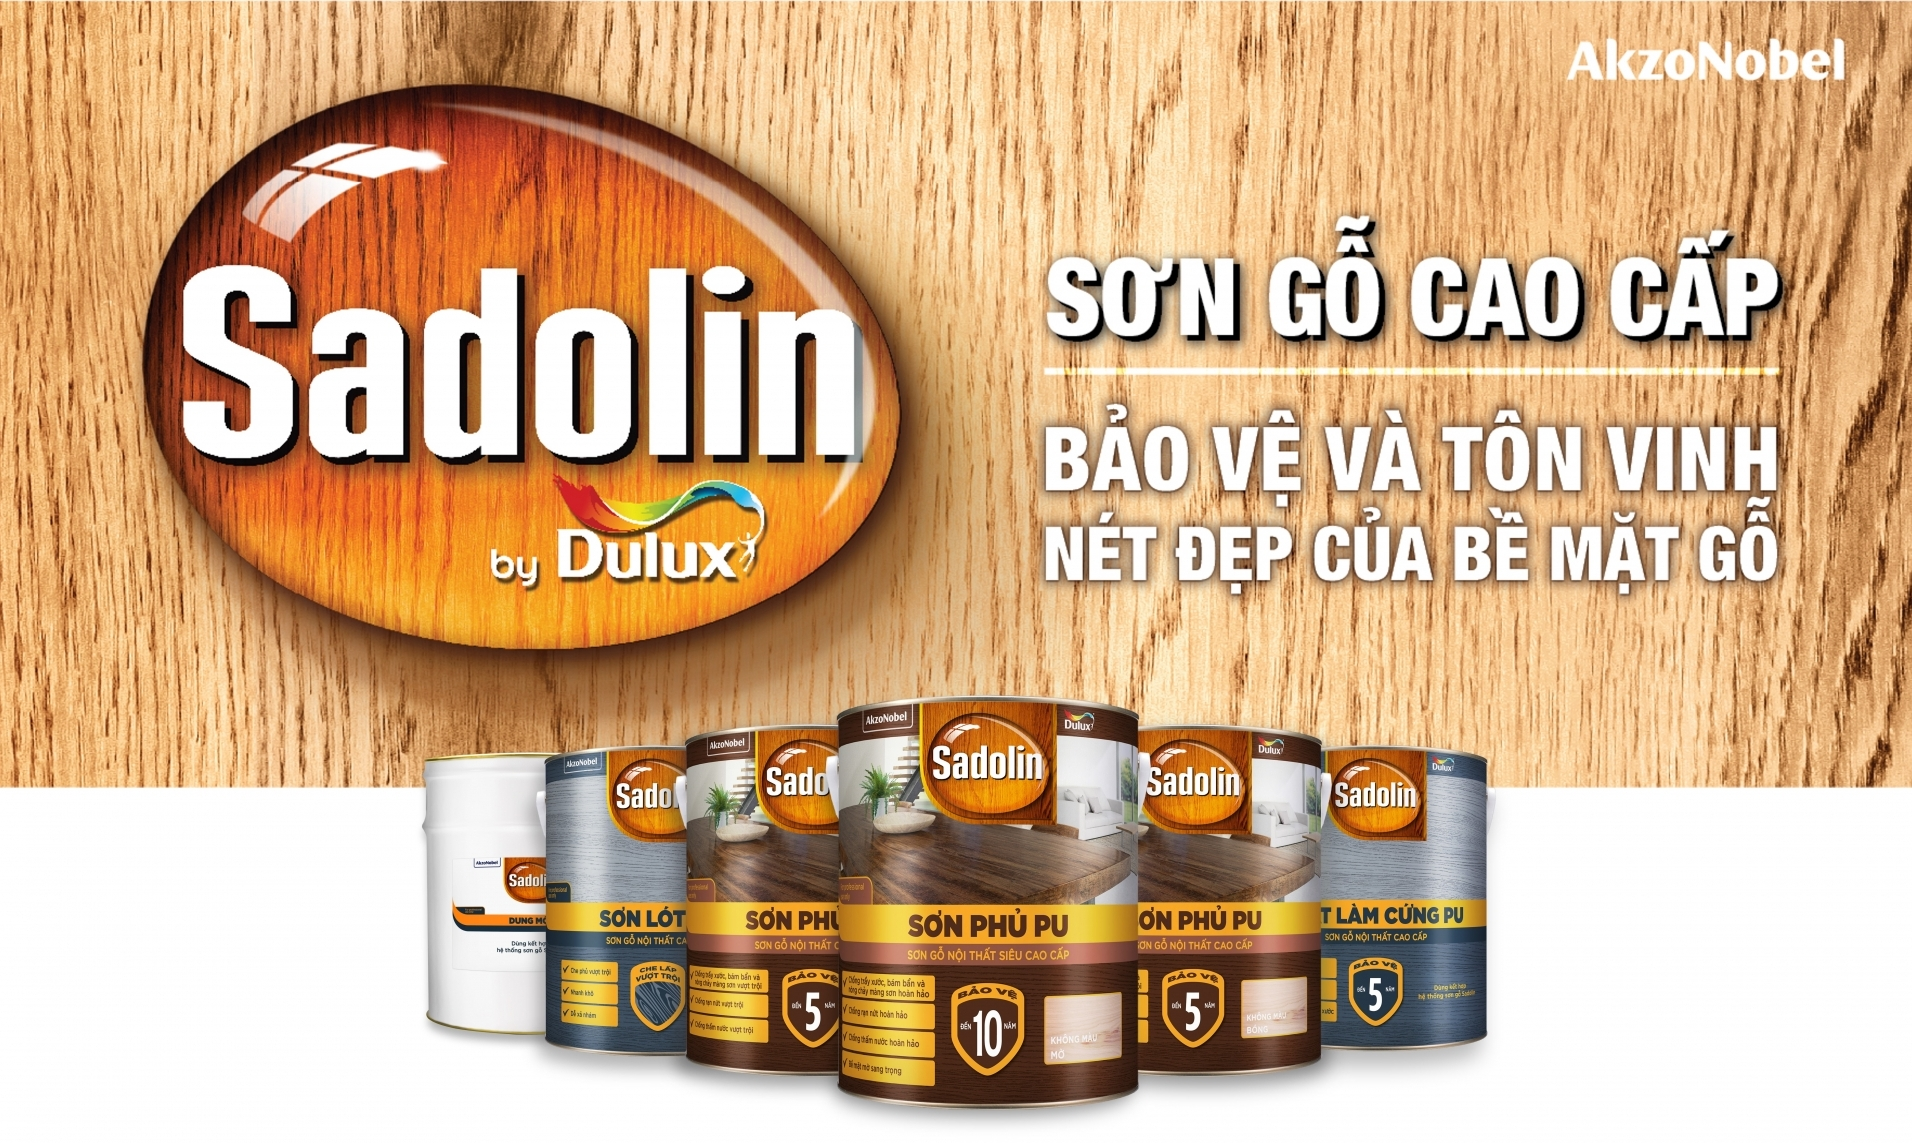 Sadolin from AkzoNobel brings global expert solution to enhance beauty of wood